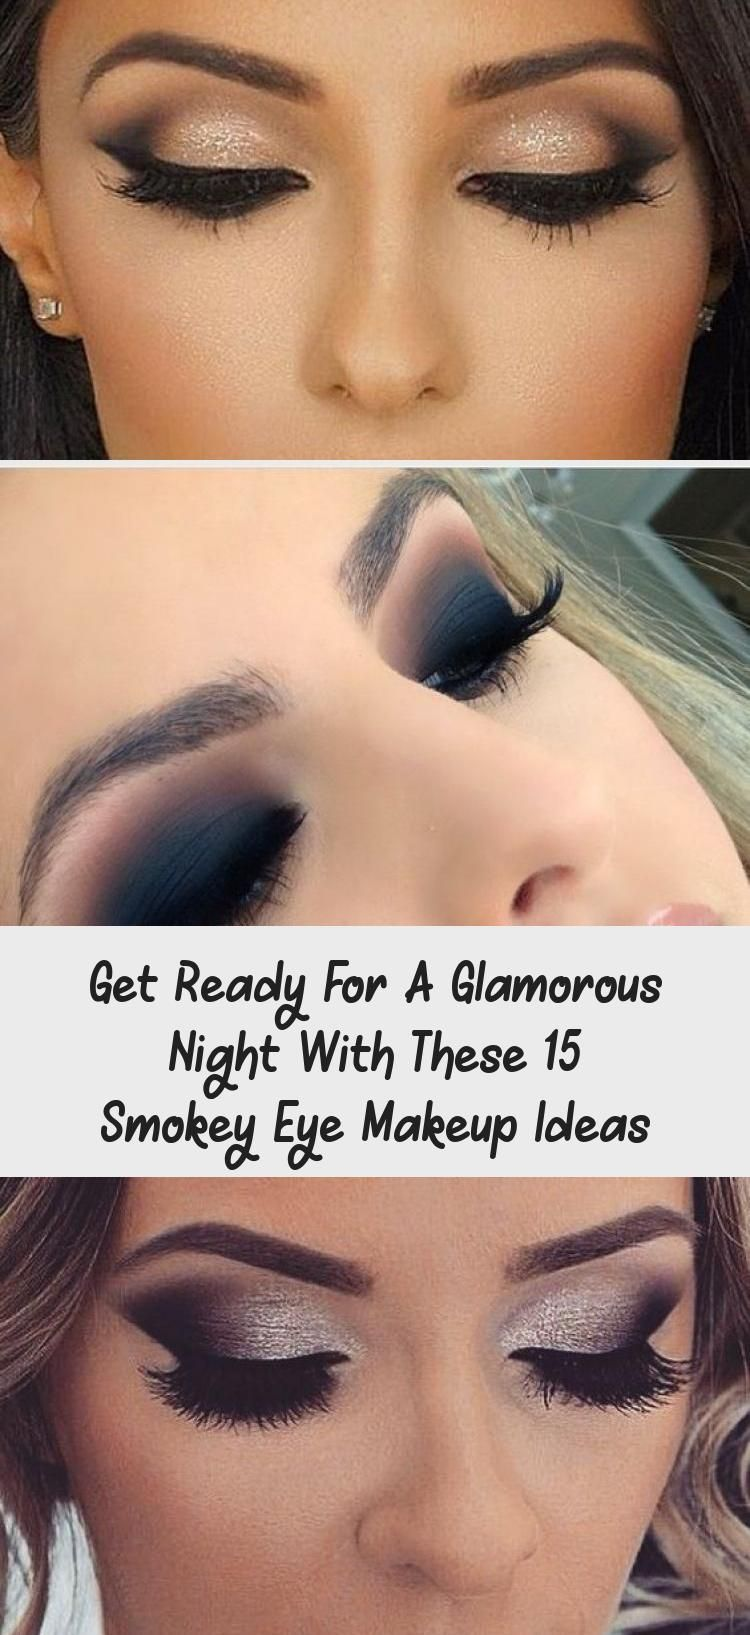 Get Ready For A Glamorous Night With These 15 Smokey Eye